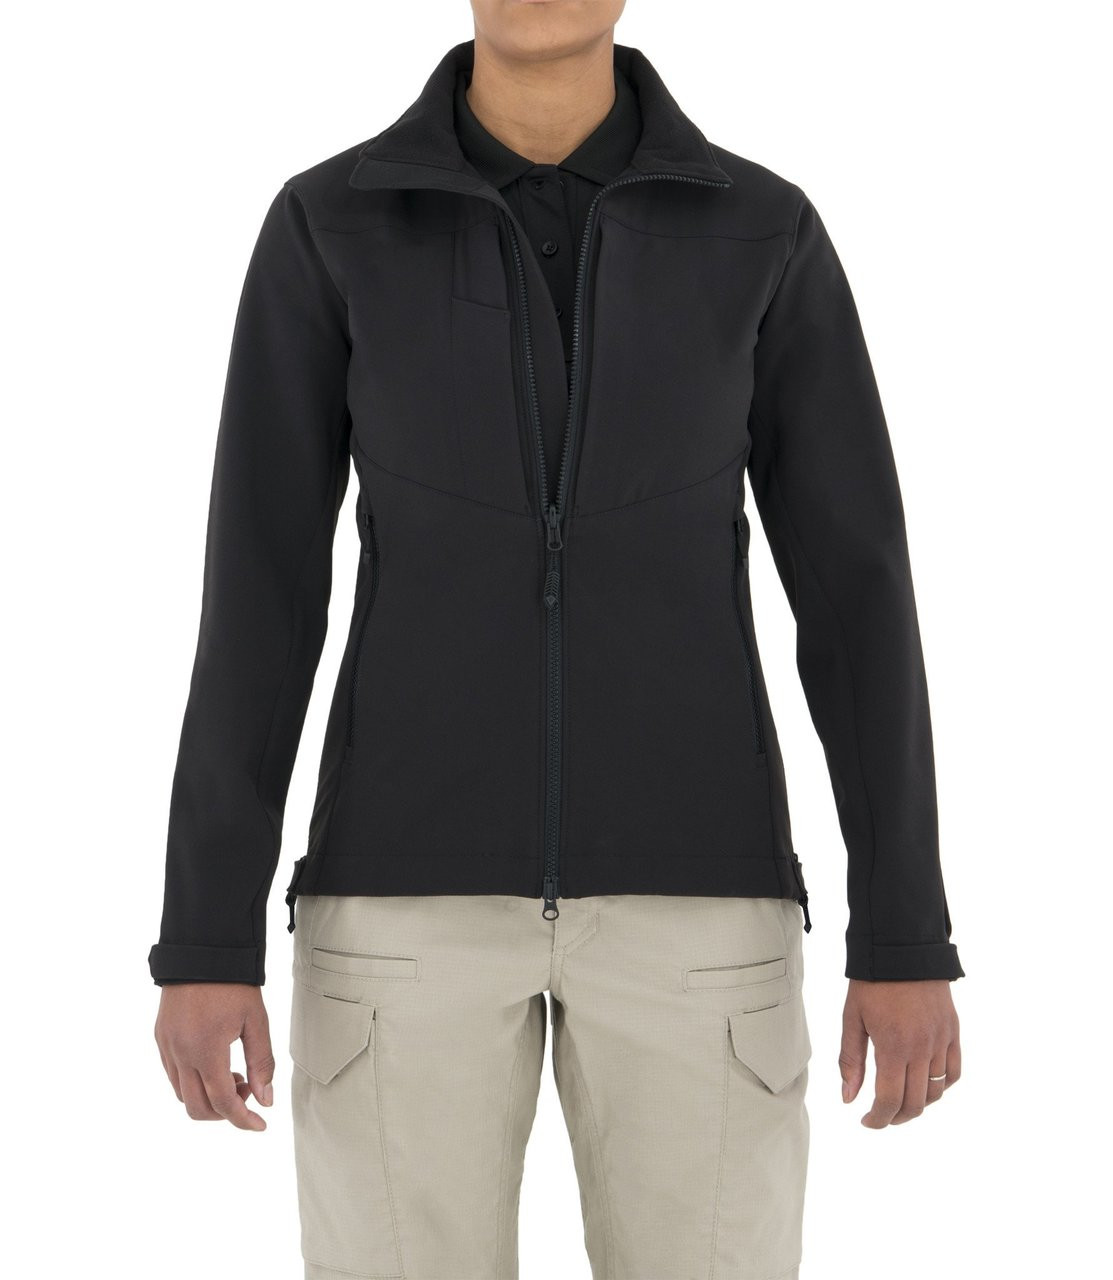 First Tactical Women s Tactix Softshell Jacket - Hero Outdoors e4bae068c4